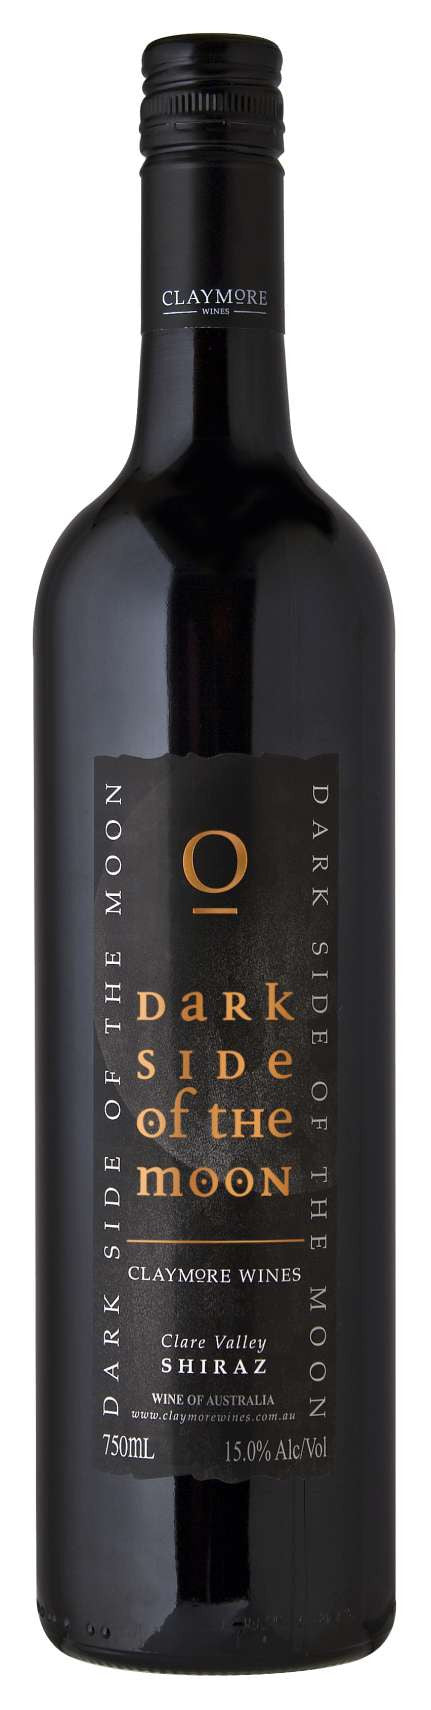 Claymore Dark Side Of The Moon Shiraz 2014 - Network Wines